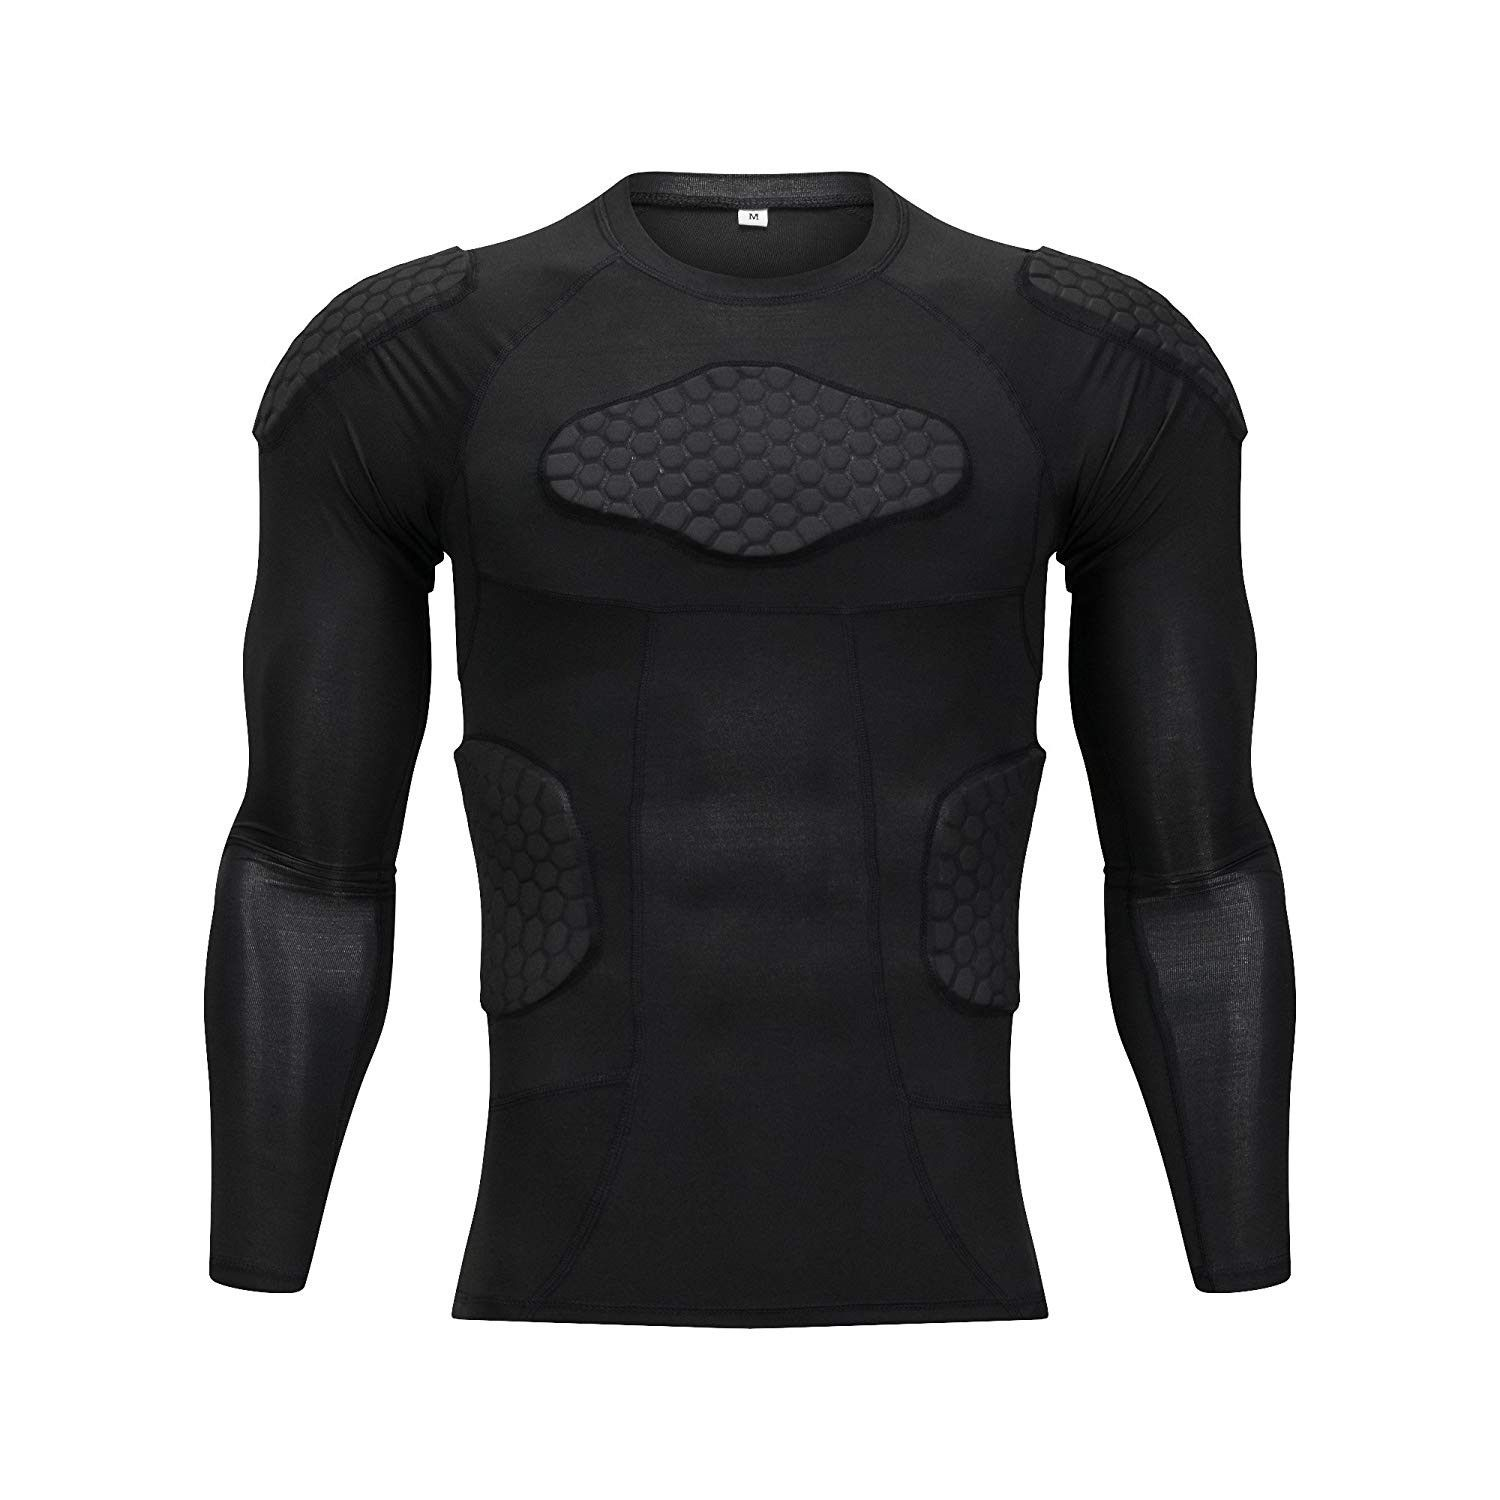 Classic padded compression shirt long sleeve padded